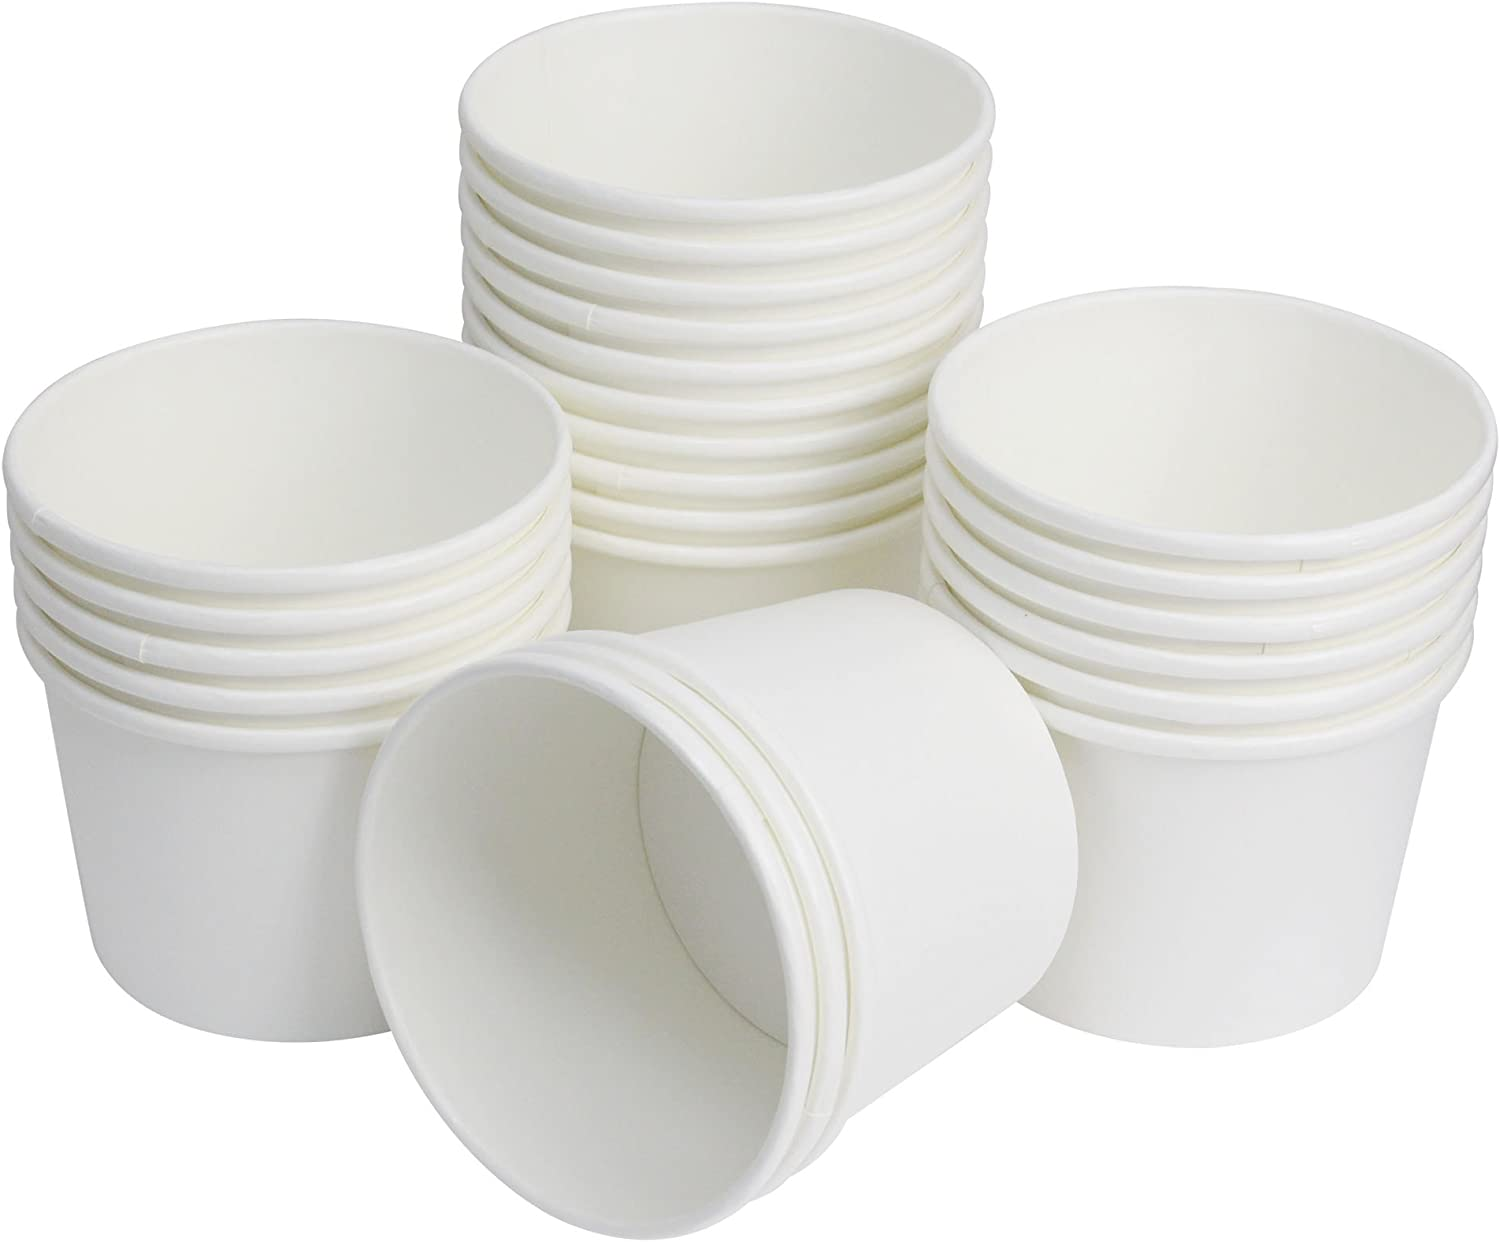 25 Count Disposable Hot and Cold Food Storage Paper Containers, Durable Ice Cream Cups for Frozen Desserts, Hot Soups, or Any Food You Desire (16 Ounce, White)